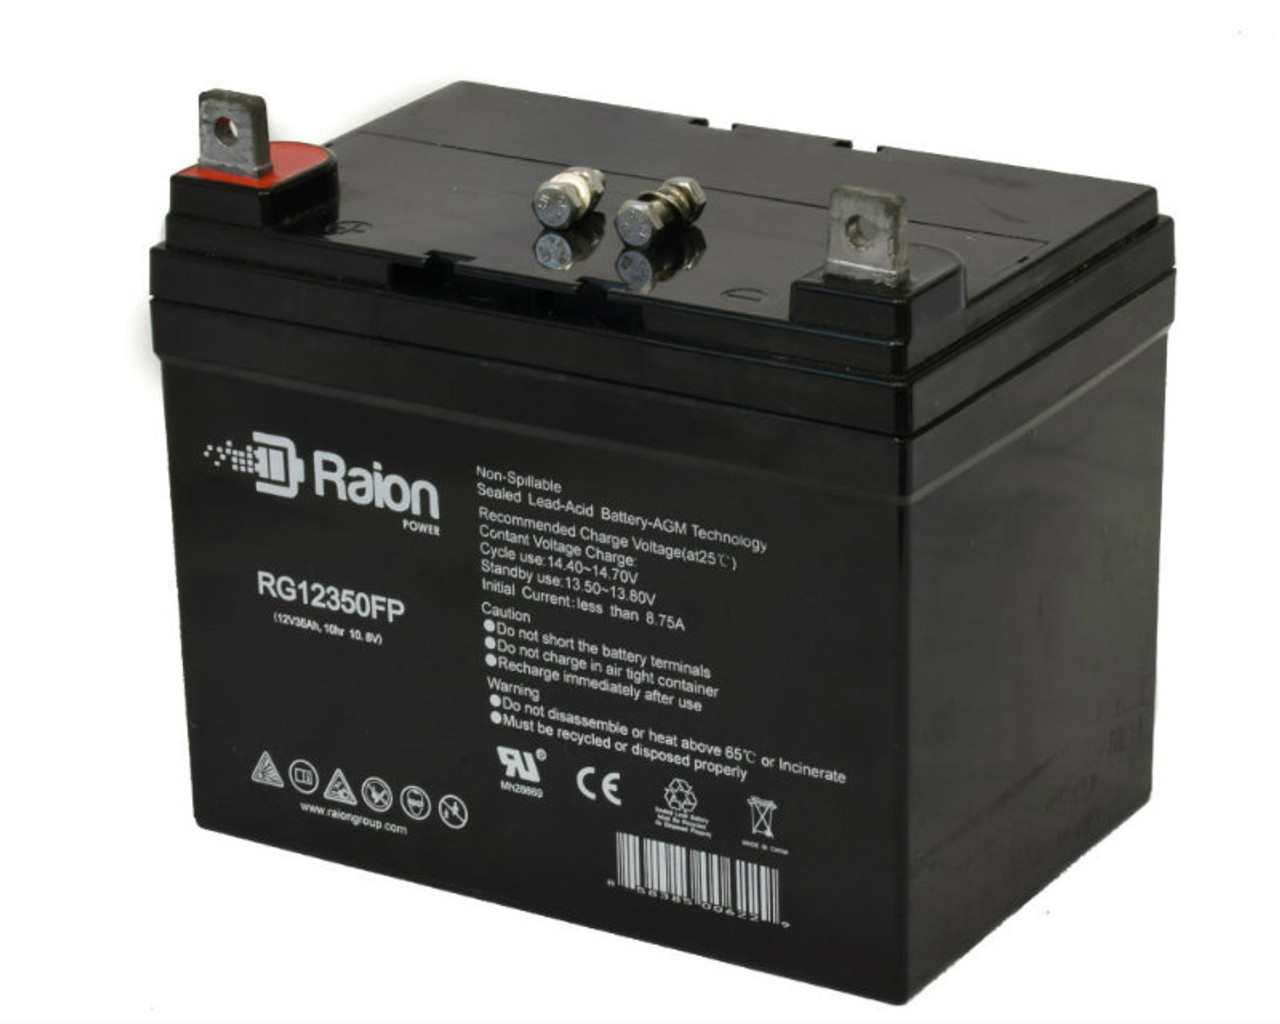 RG12350FP Sealed Lead Acid Battery Pack For Electric Mobility Rascal 309LE Candy Apple Mobility Scooter